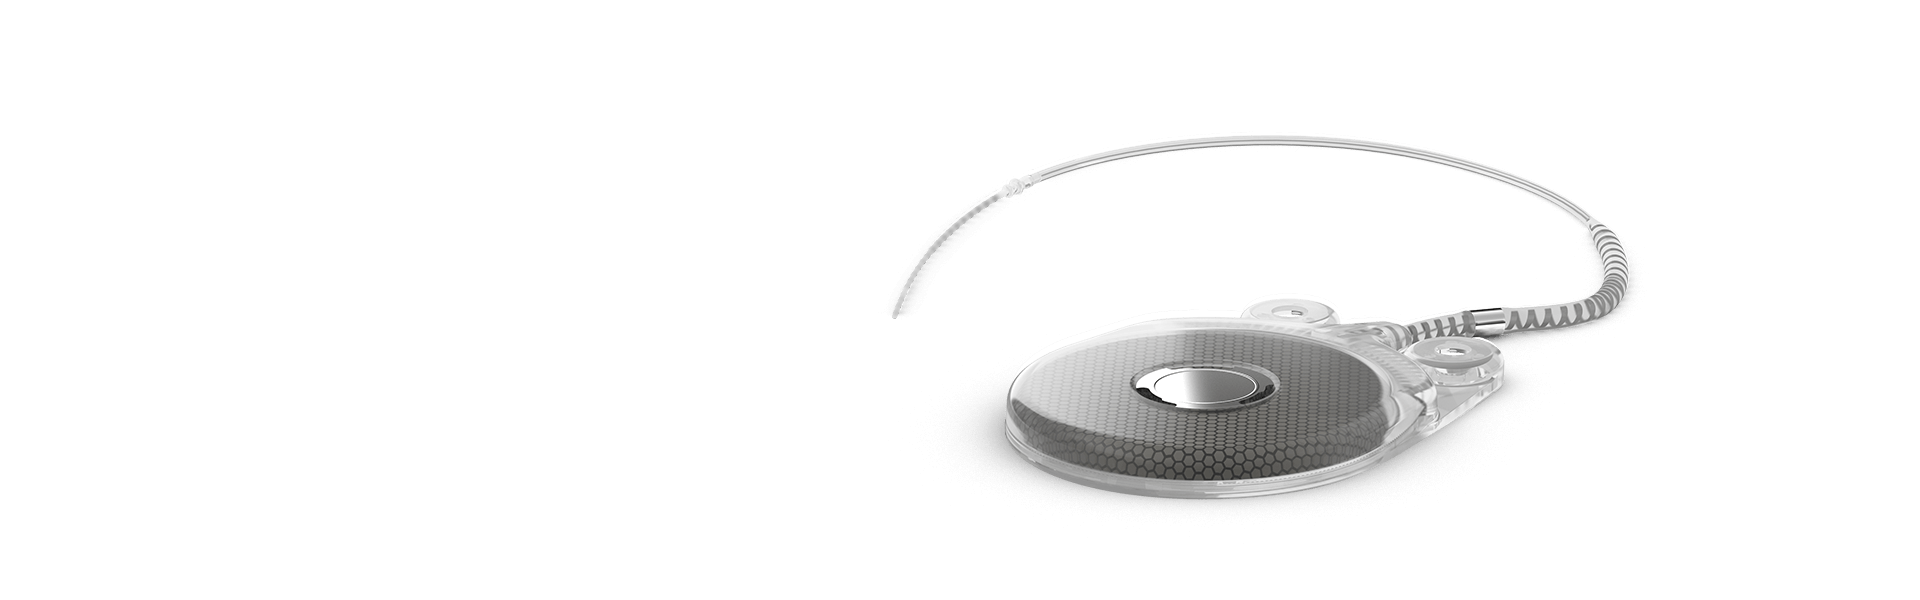 The Neuro Zti implant is the industry's most compact implant, designed to make surgery as simple as possible.